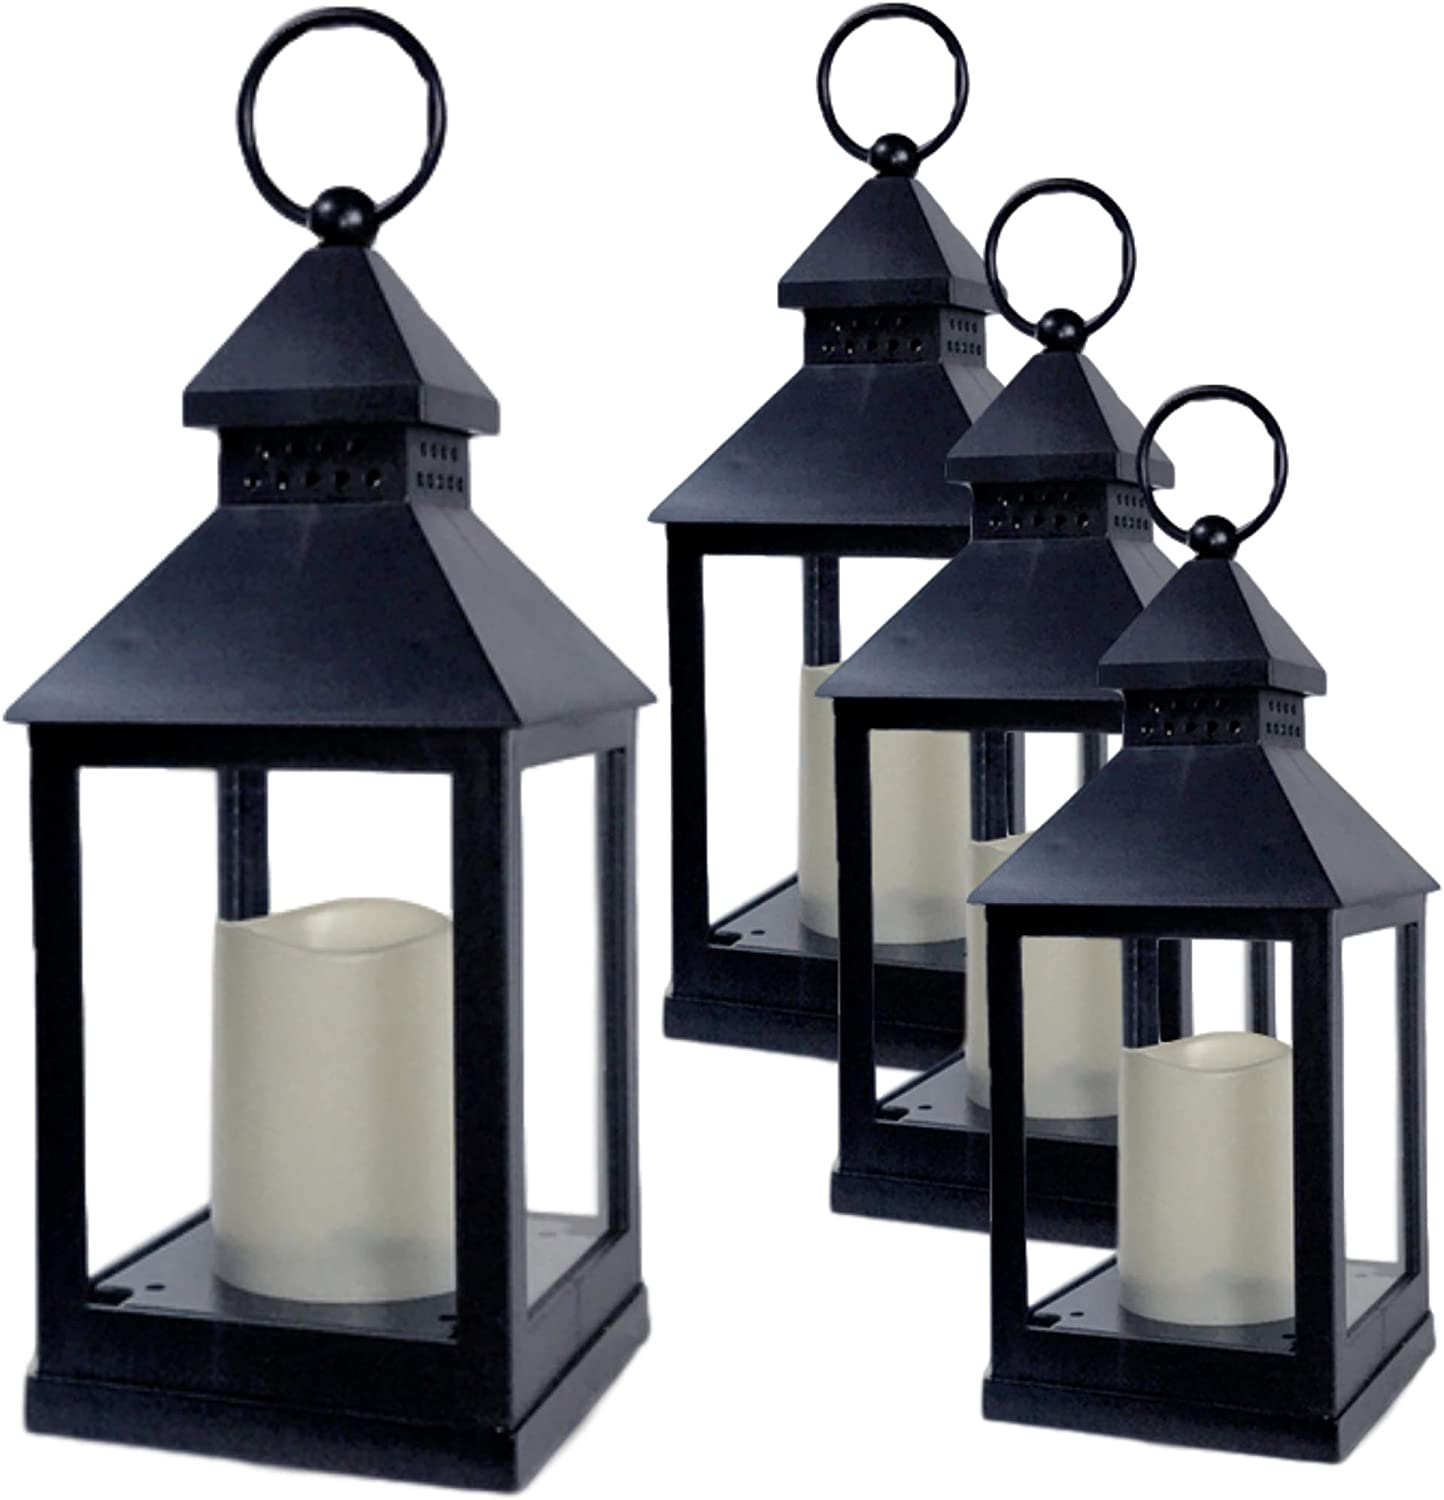 "BANBERRY DESIGNS Decorative Lantern - Set of 8-8 Hour Timer - 8 8/8"" H  Black Lanterns with Flameless Candles Included - Indoor/Outdoor Lantern Set  -"